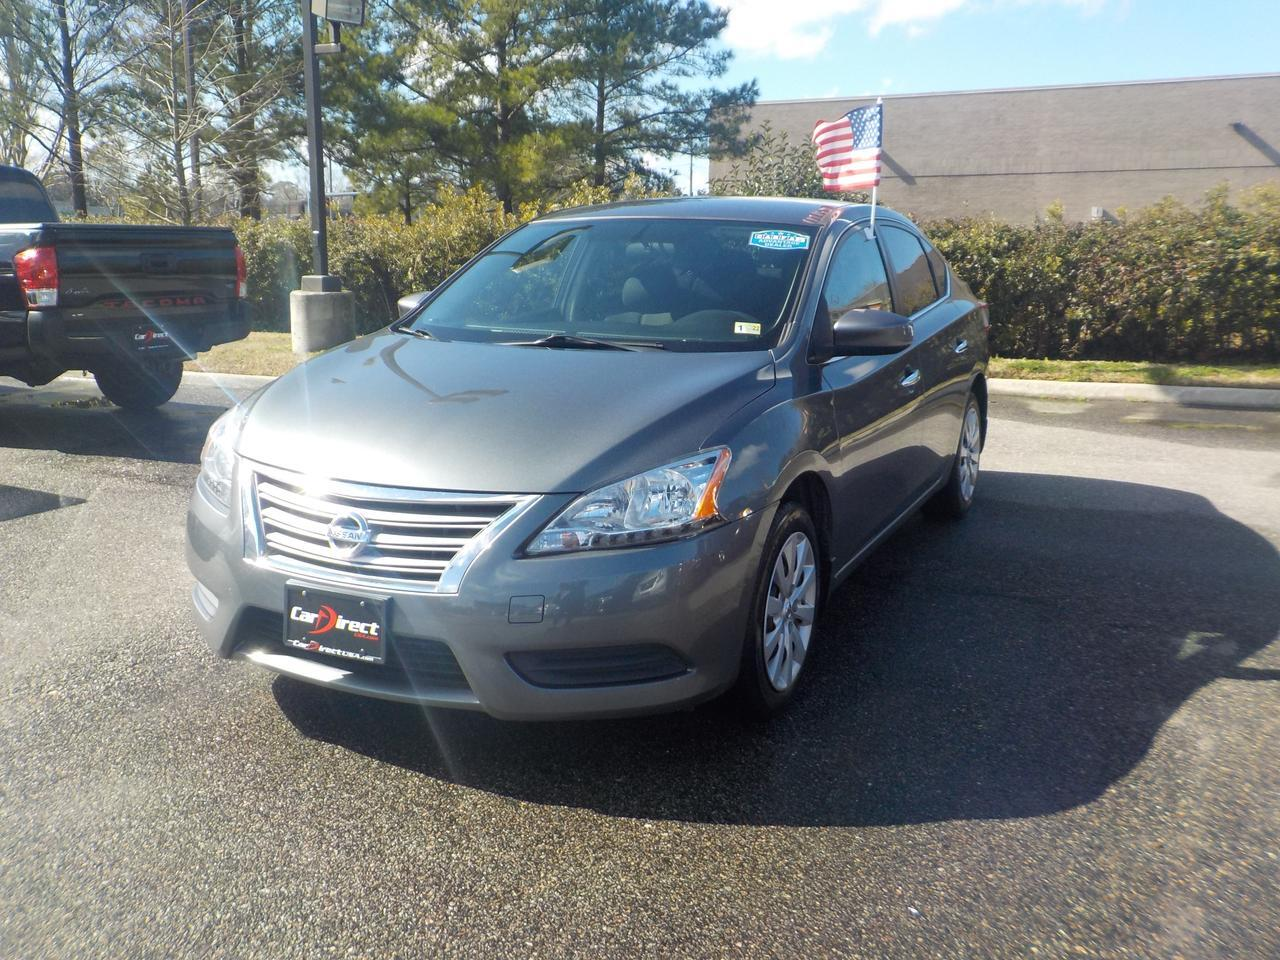 2015 NISSAN SENTRA S CVT, SATELLITE CAPABILITIES, BLUETOOTH WIRELESS, SUPER CLEAN, WELL MAINTAINED!